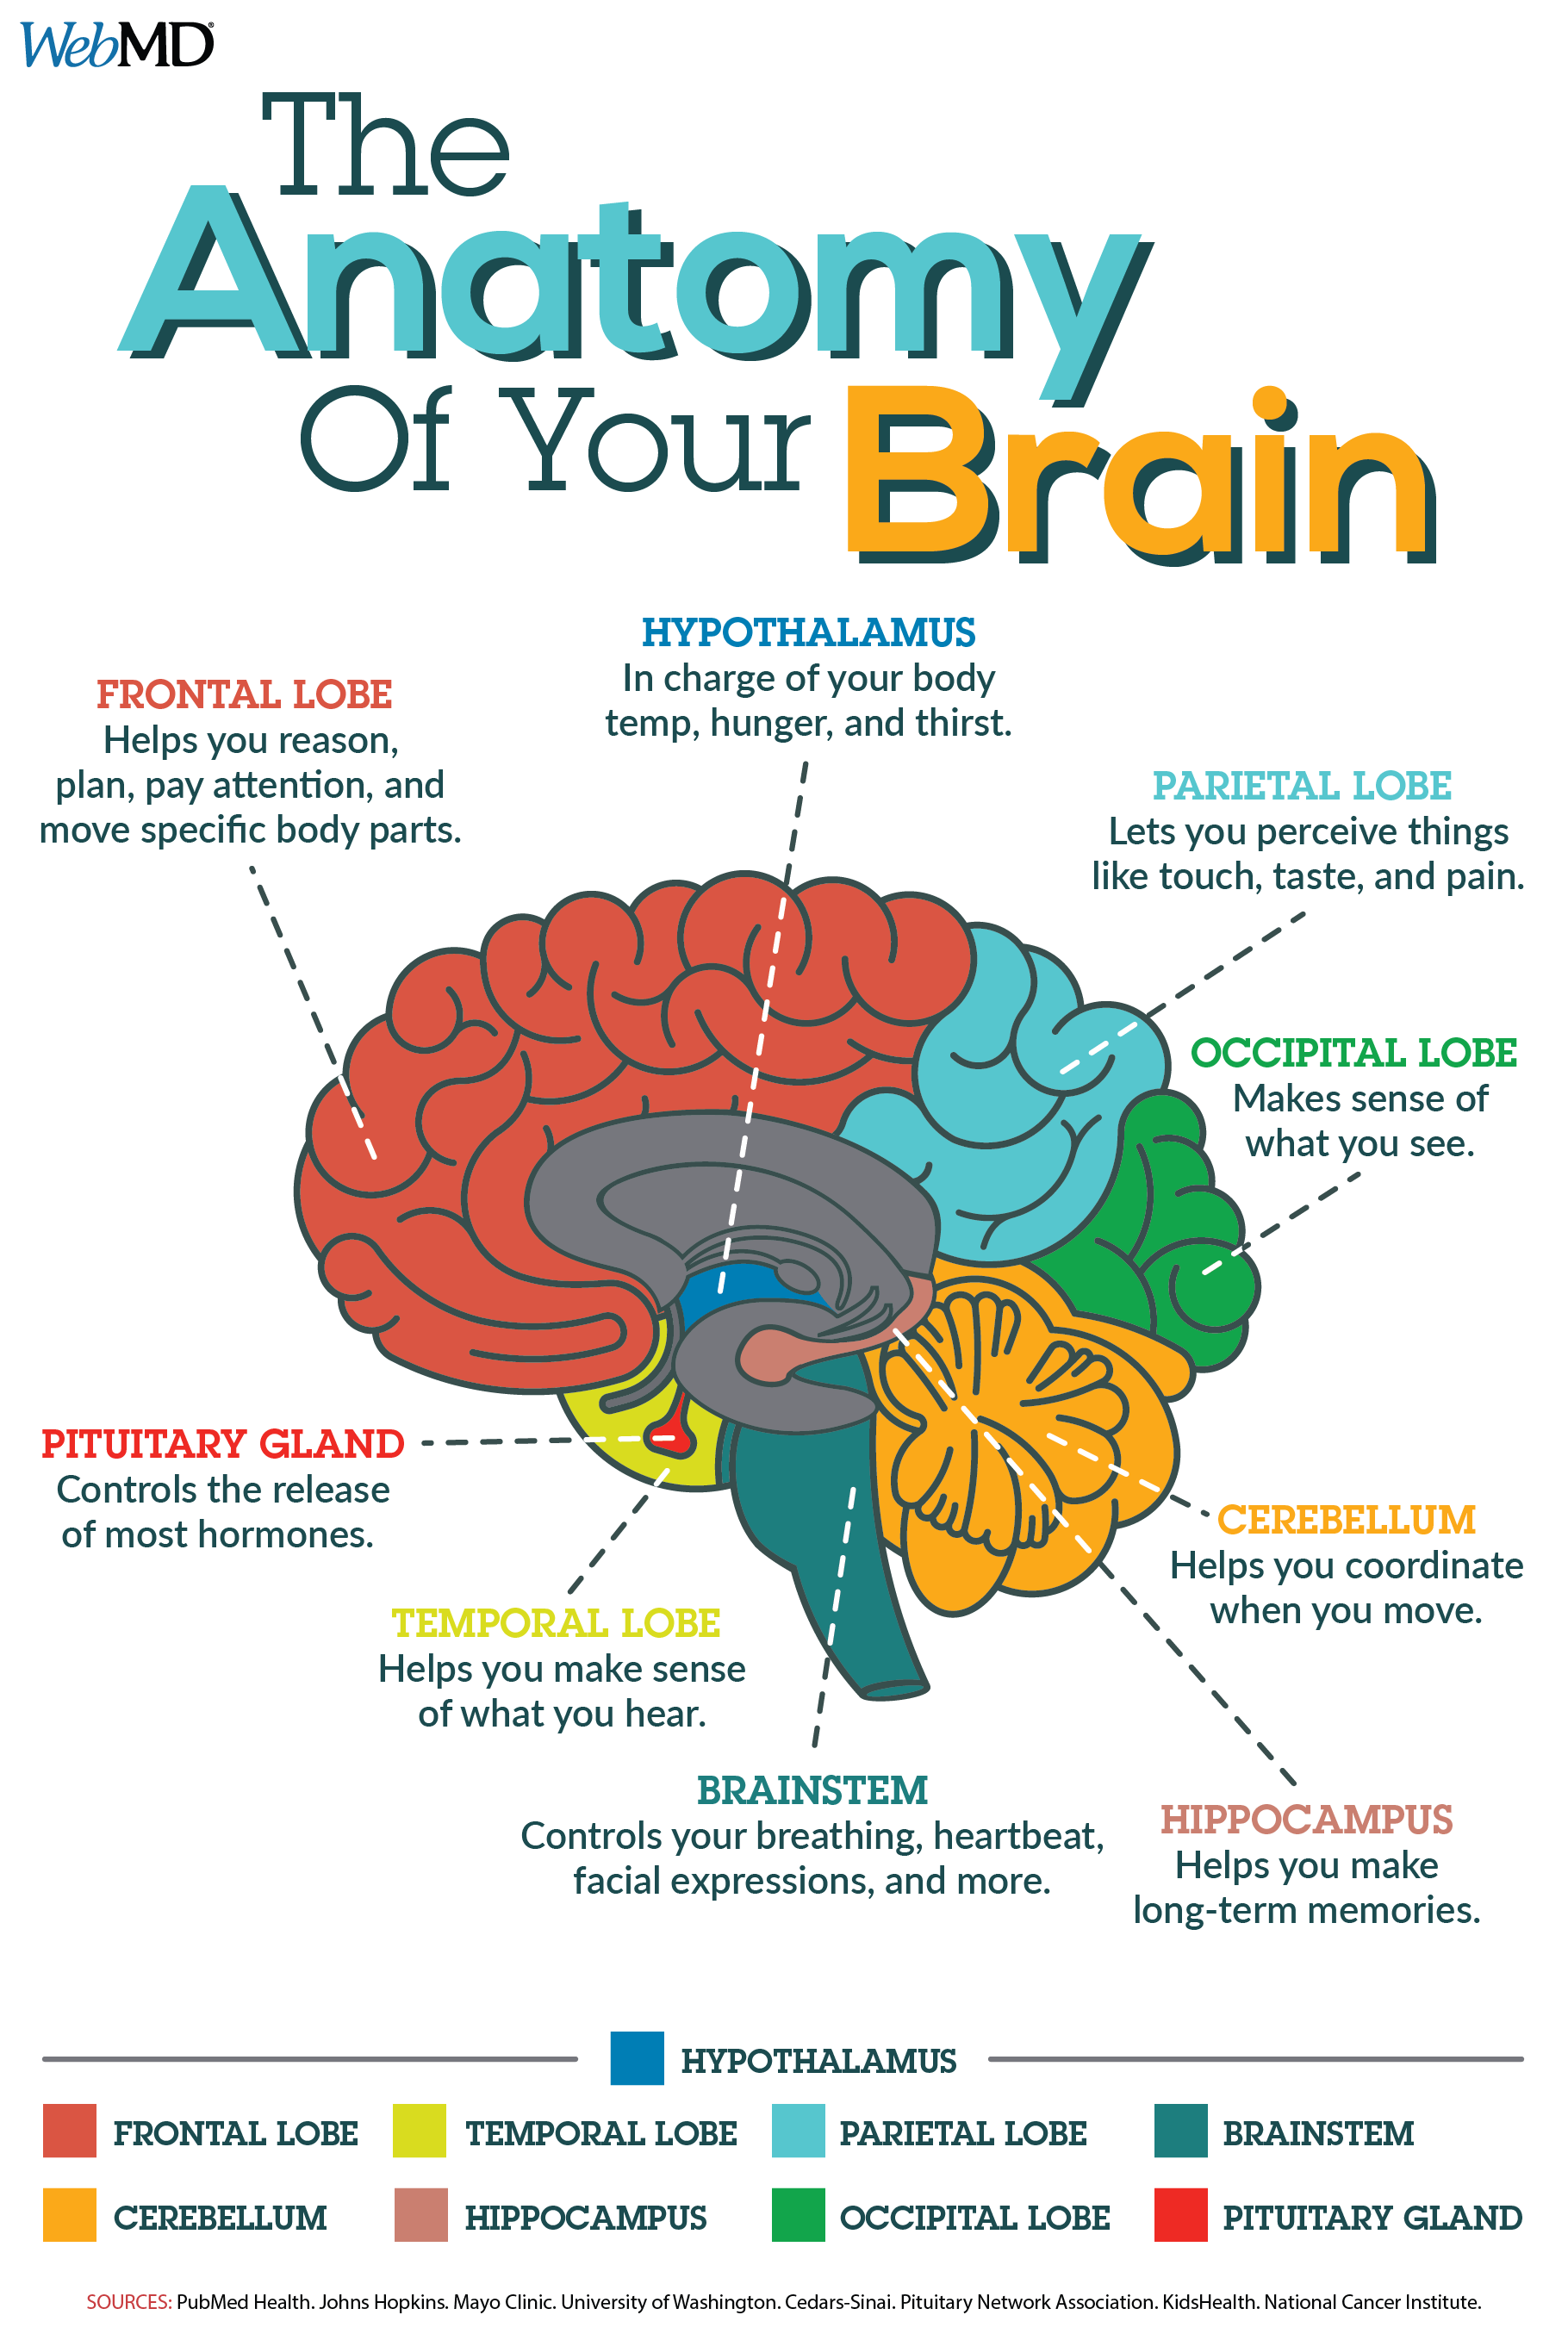 Do You Know What The Main Parts Of Your Brain Are